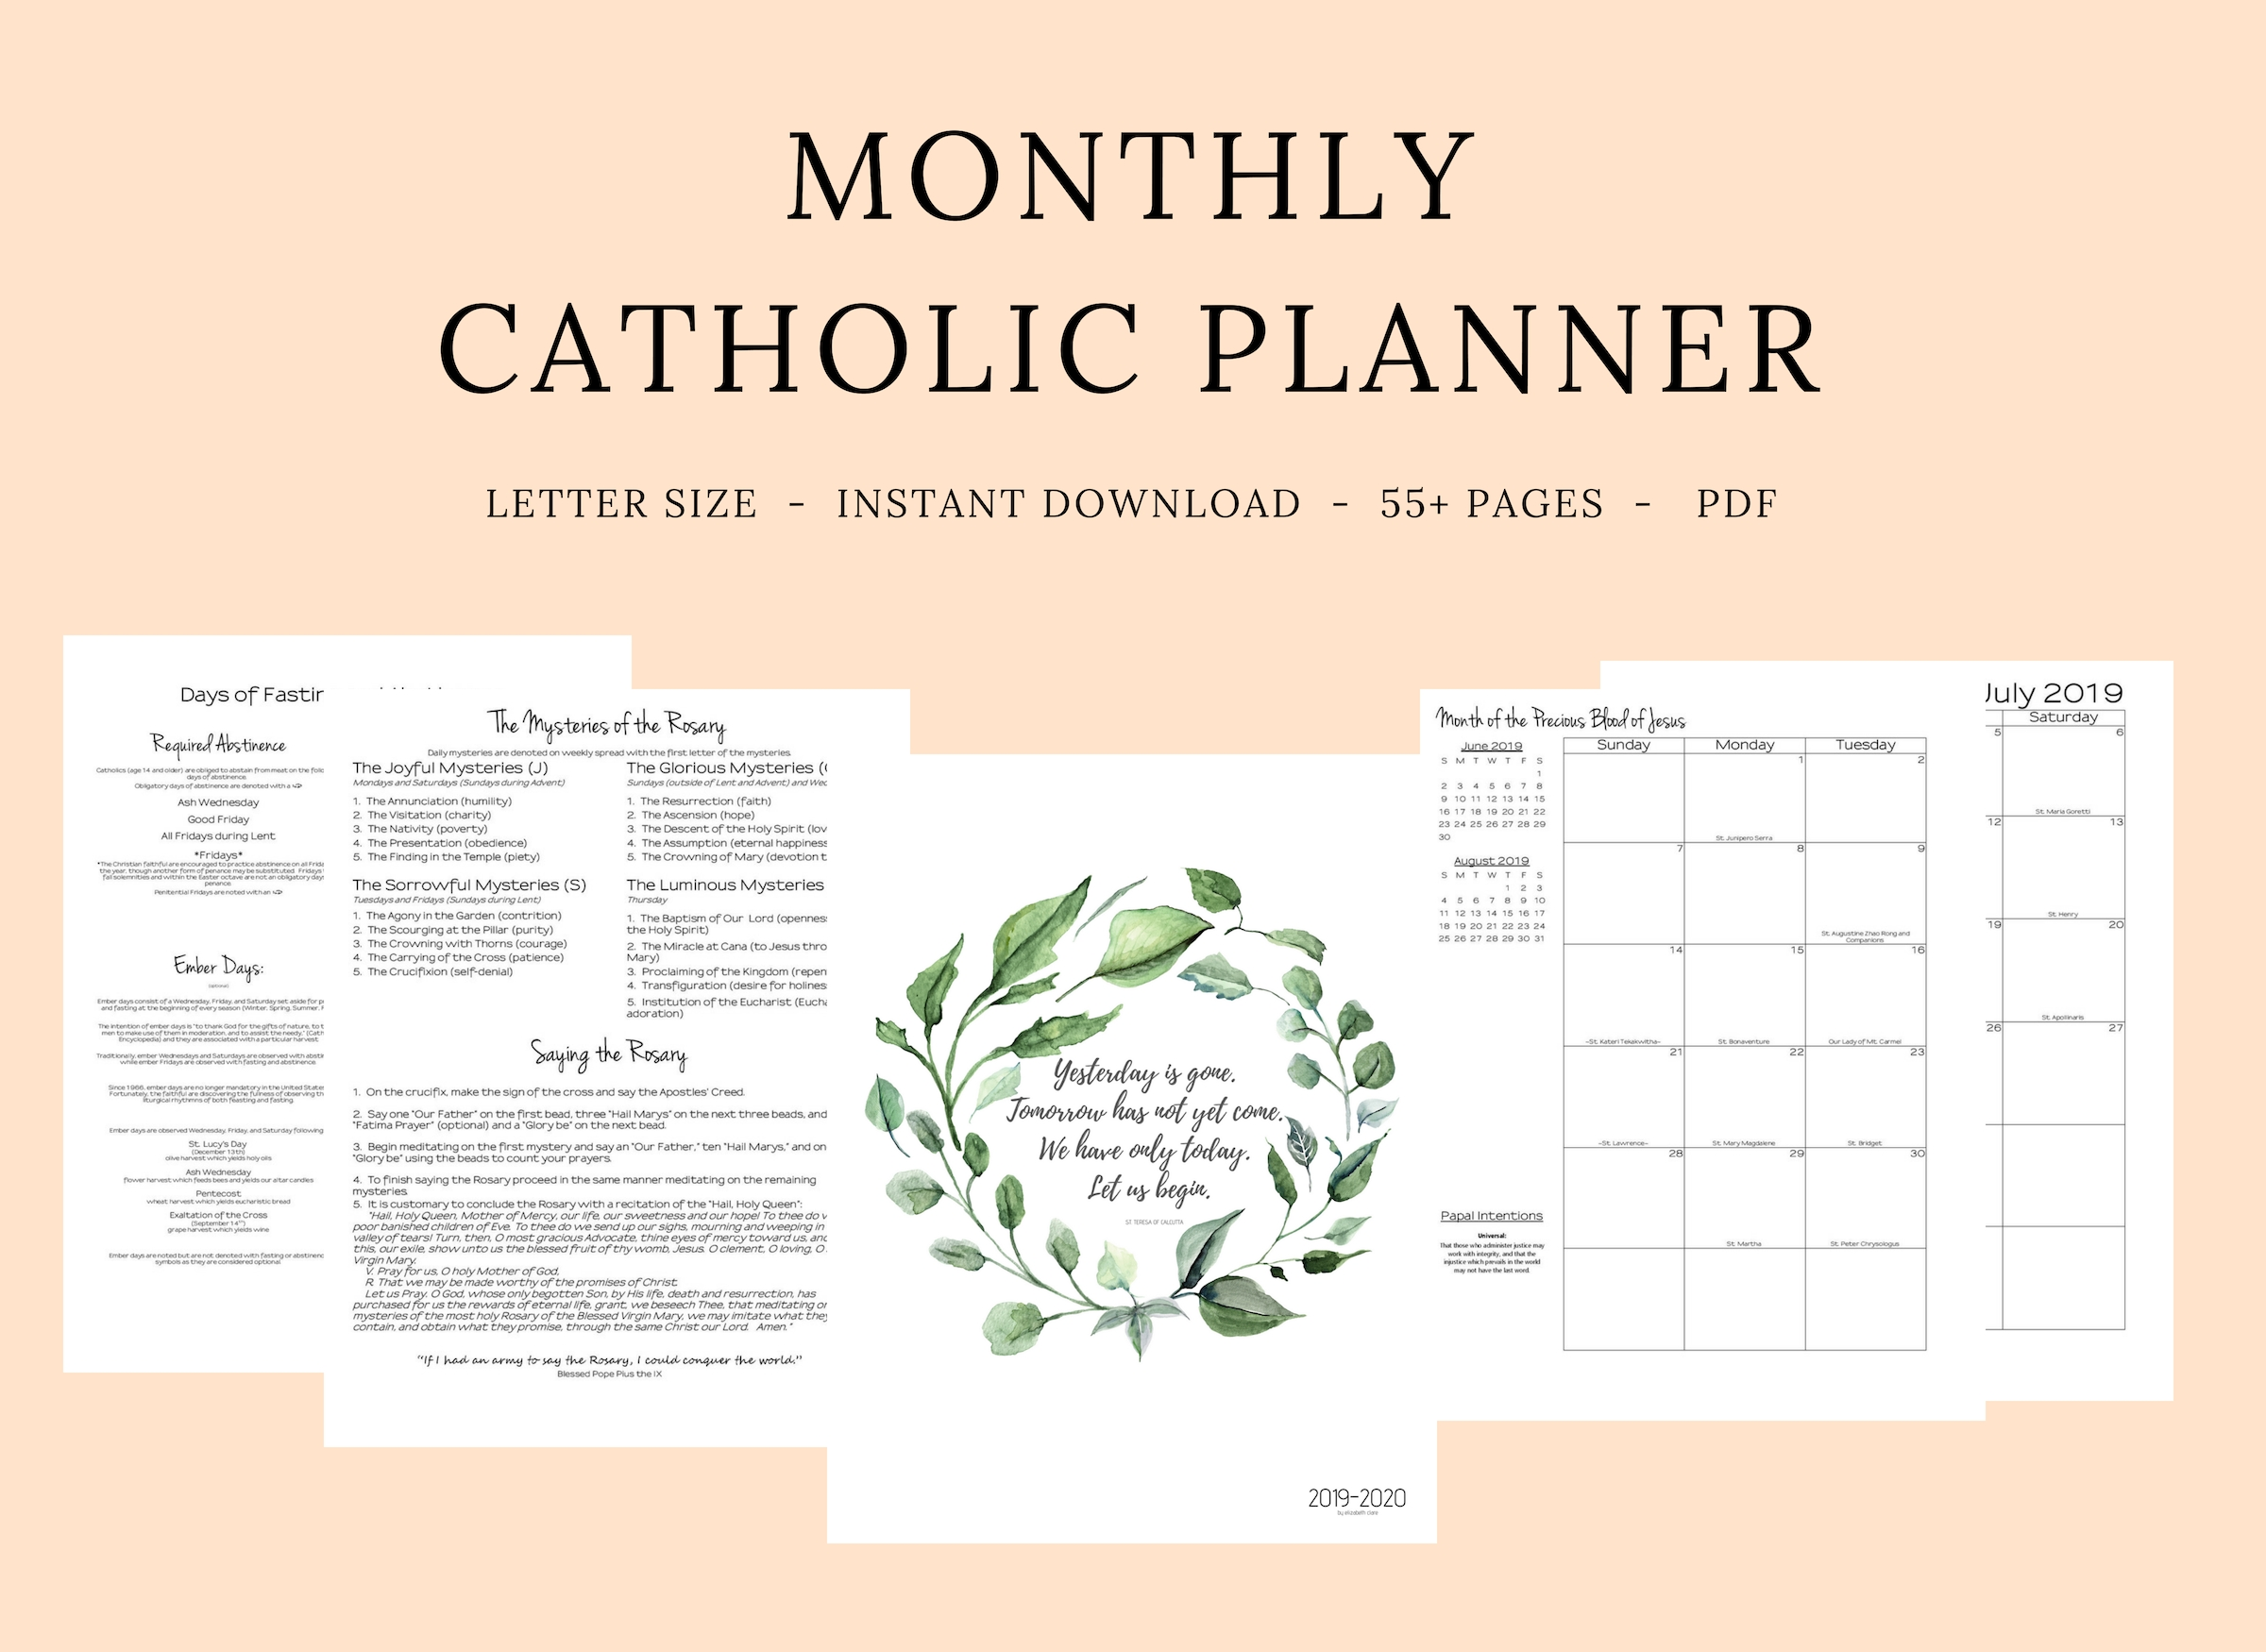 2019- 2020 Catholic Monthly Planner with regard to Printable Liturgical Calendar 2019 2020